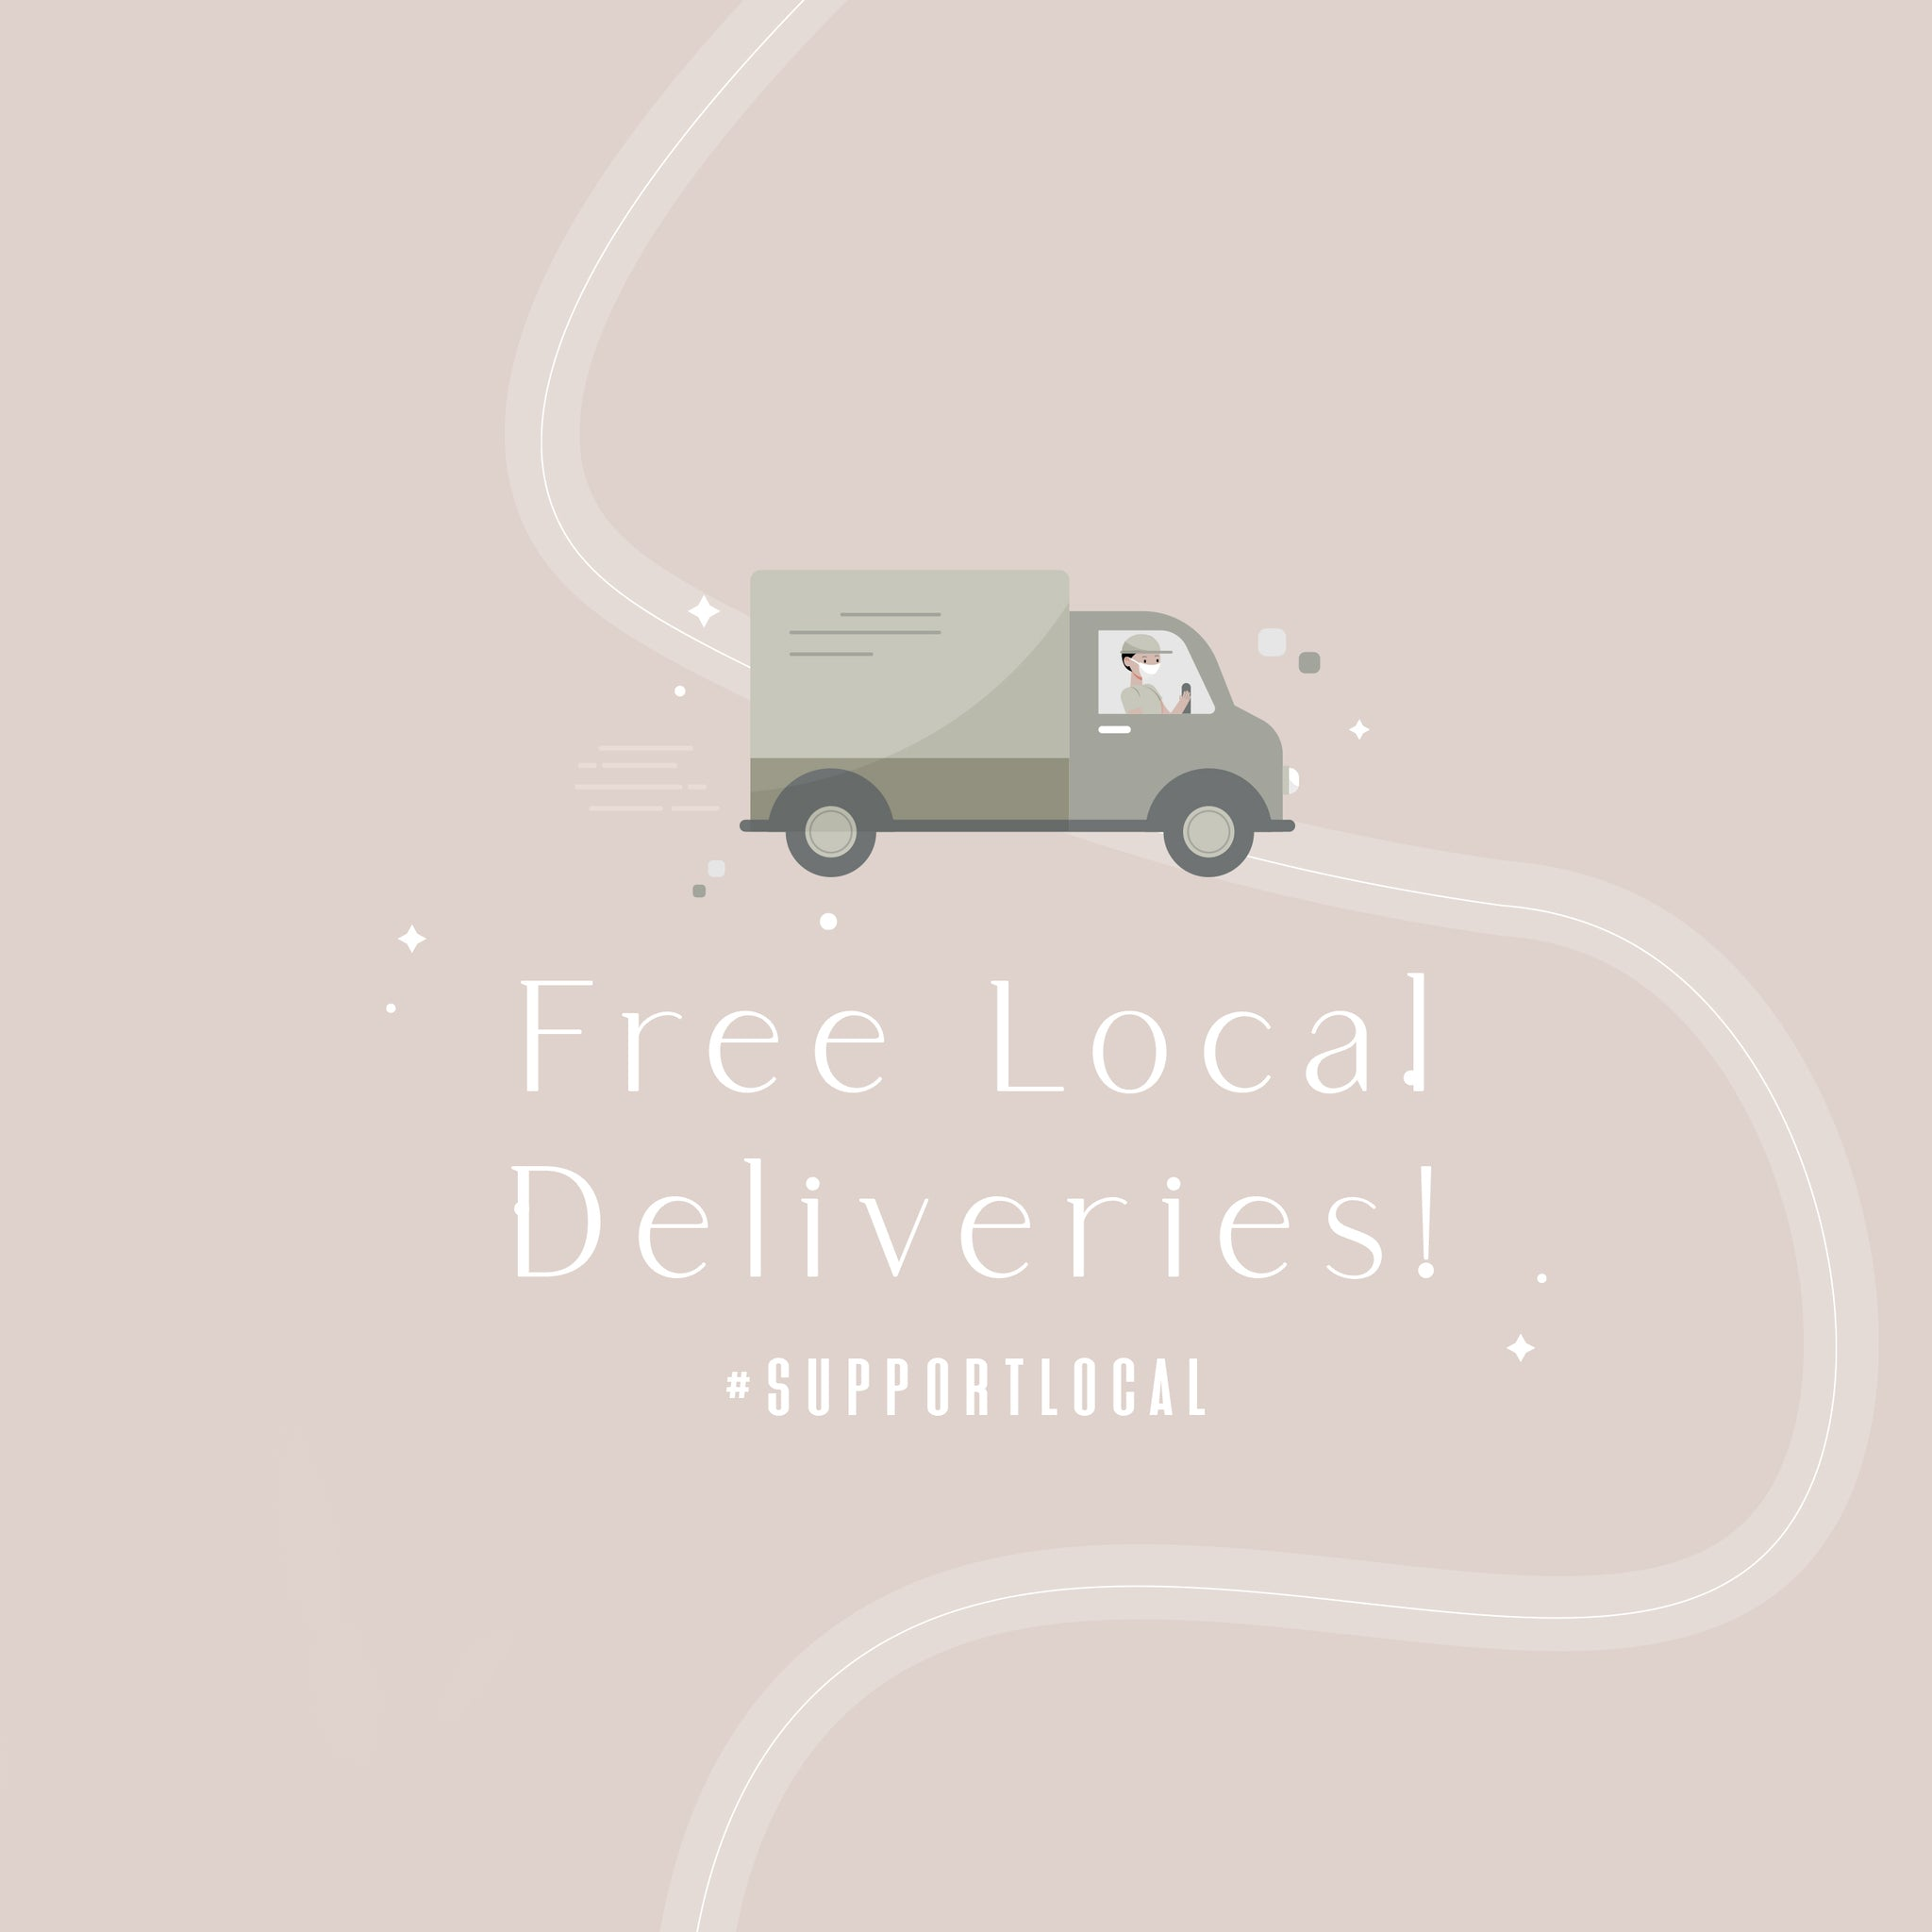 Free Local Deliveries in GTA